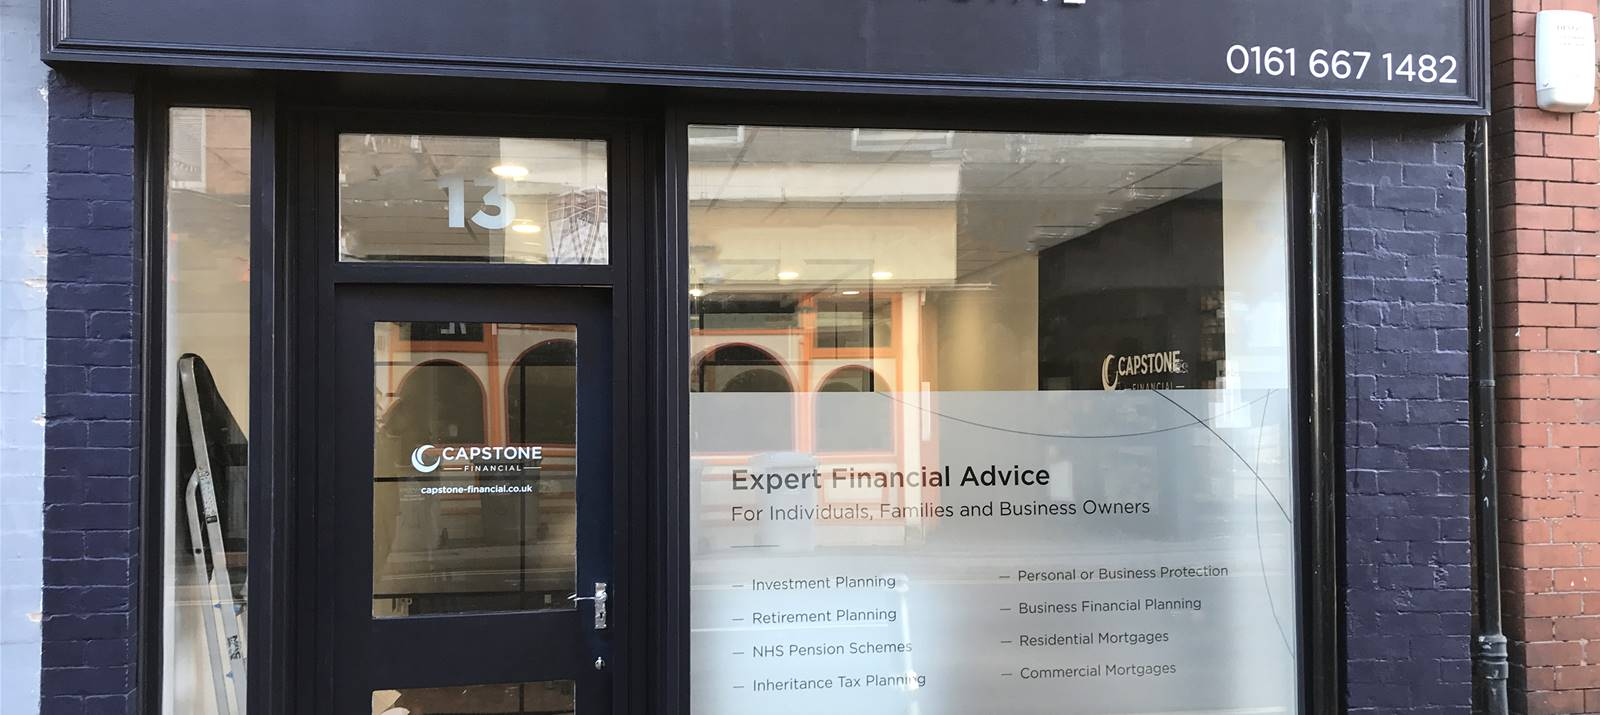 External signage and frosted window vinyl by Signs Express Macclesfield